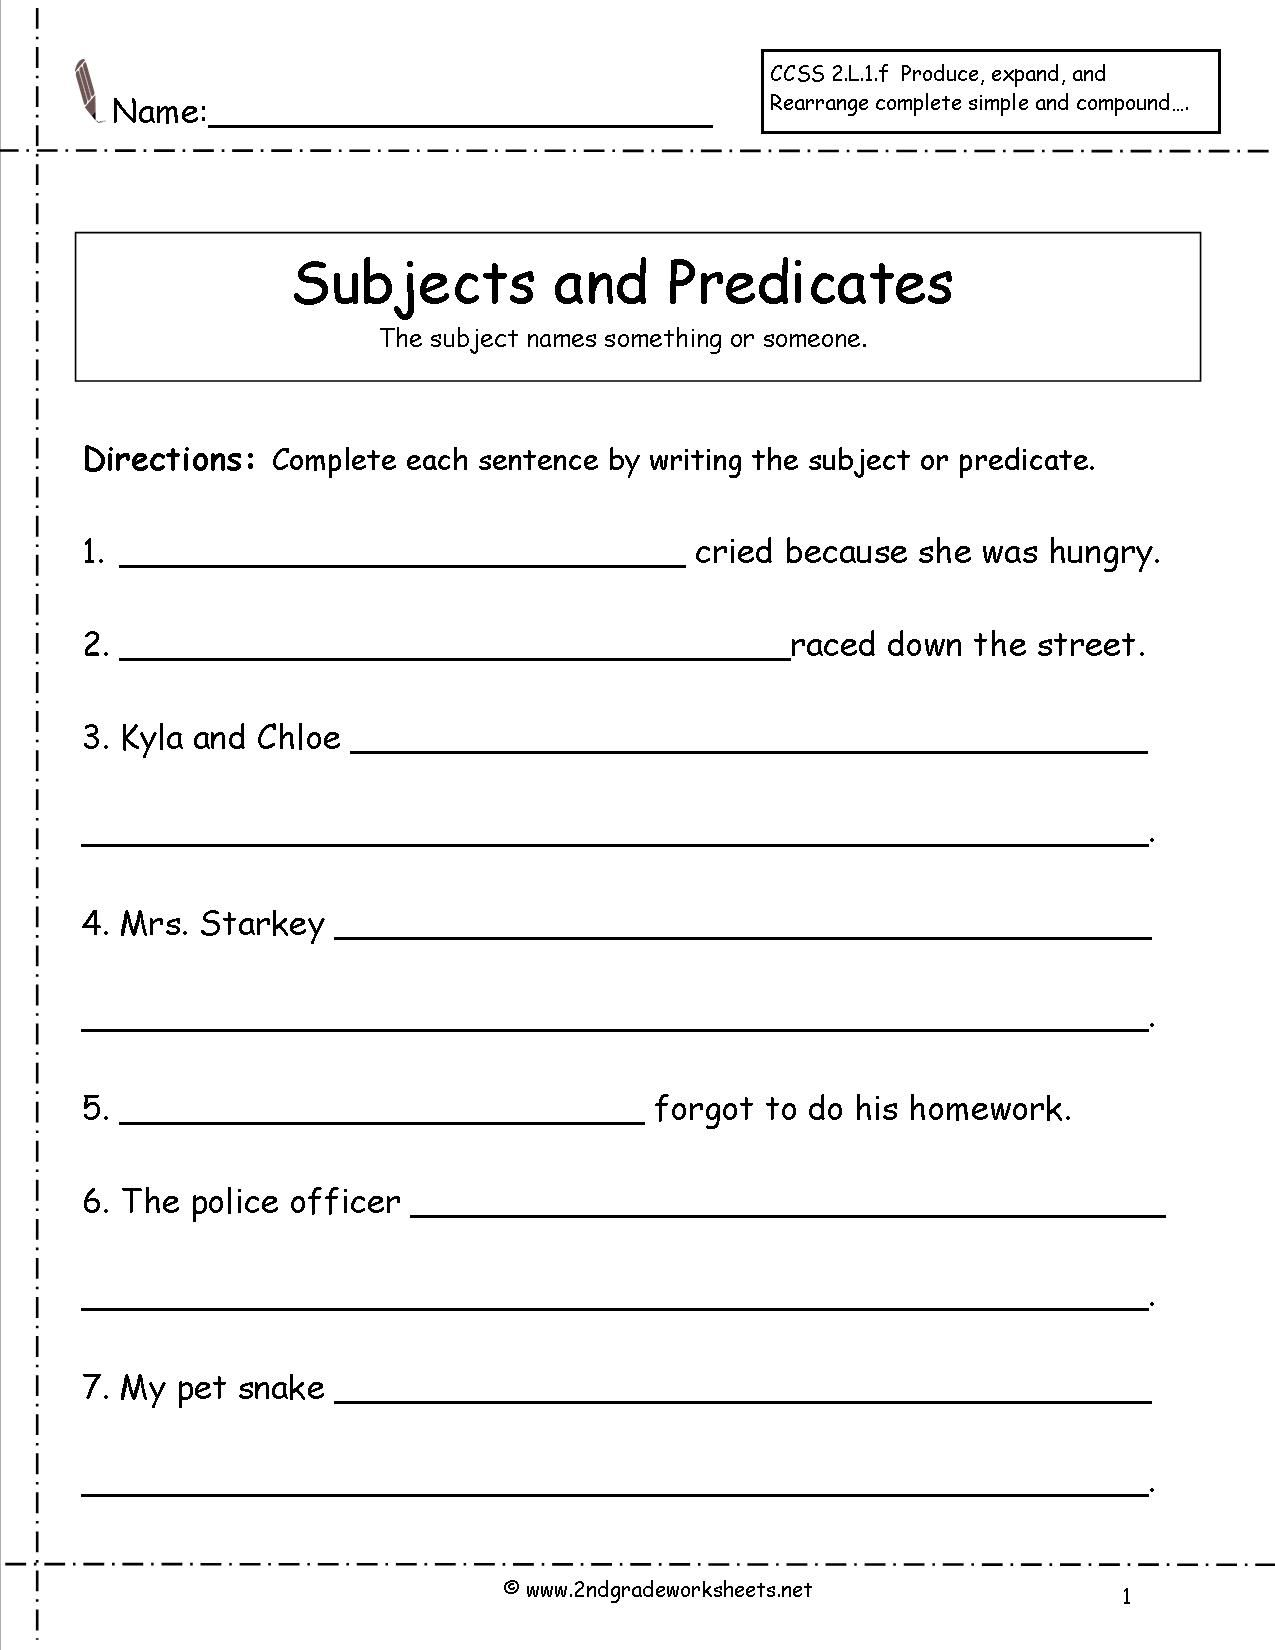 medium resolution of second grade subject and predicate game - Google Search   Subject and  predicate worksheets